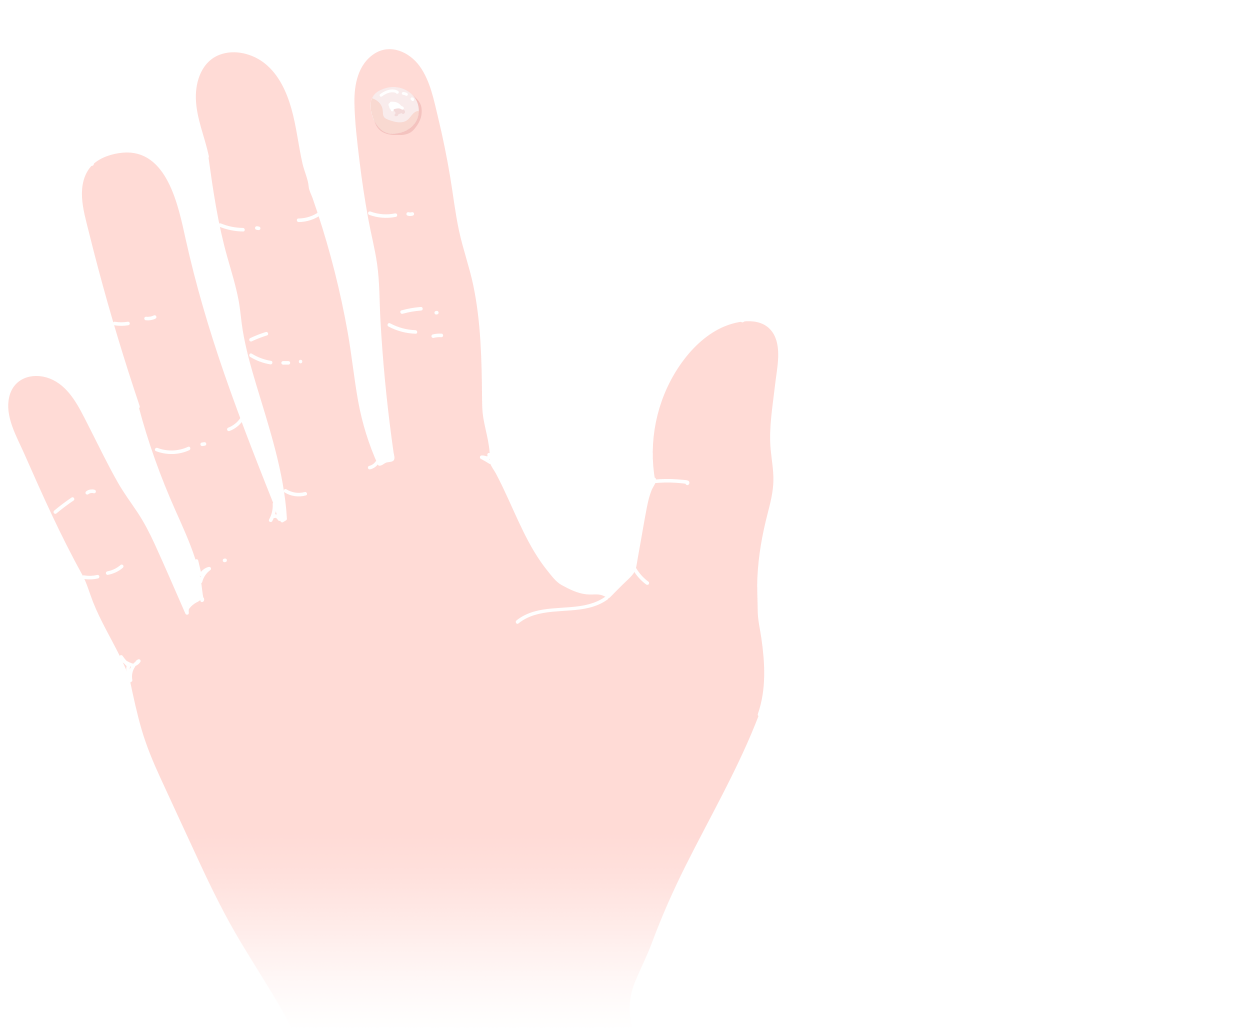 eye cream: a pea-sized amount of cream to cover the skin under both eyes.